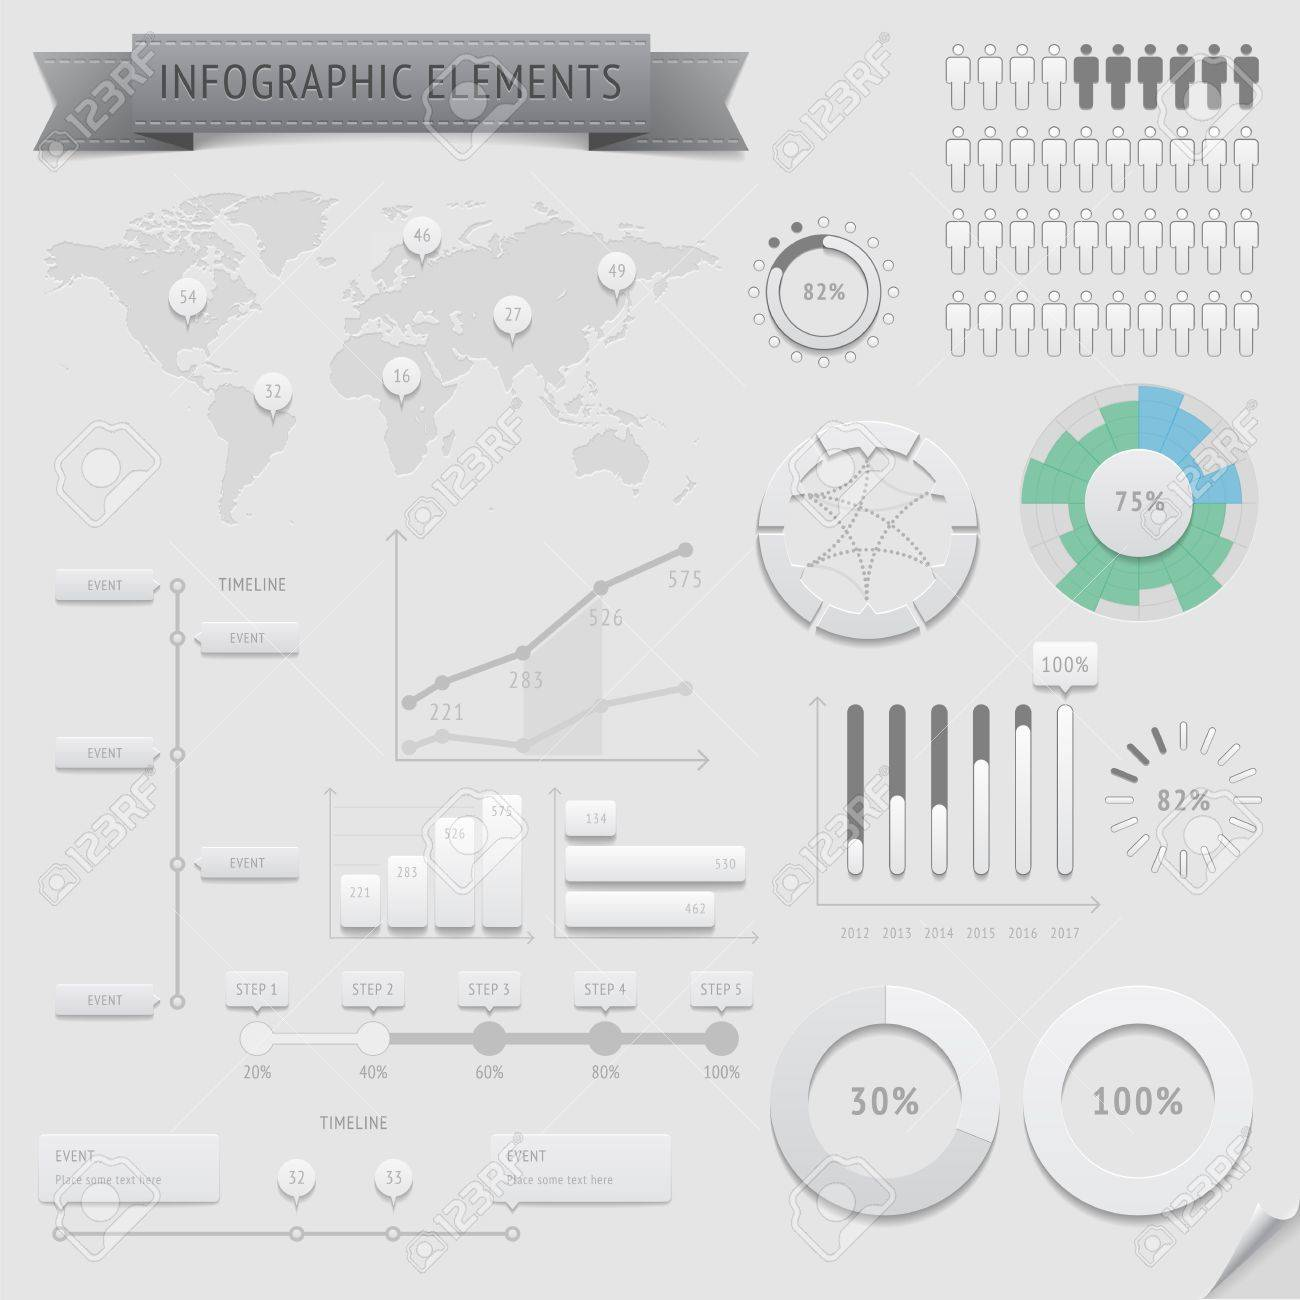 Infographic design elements file contains objects with transparency shadows etc - 18982783